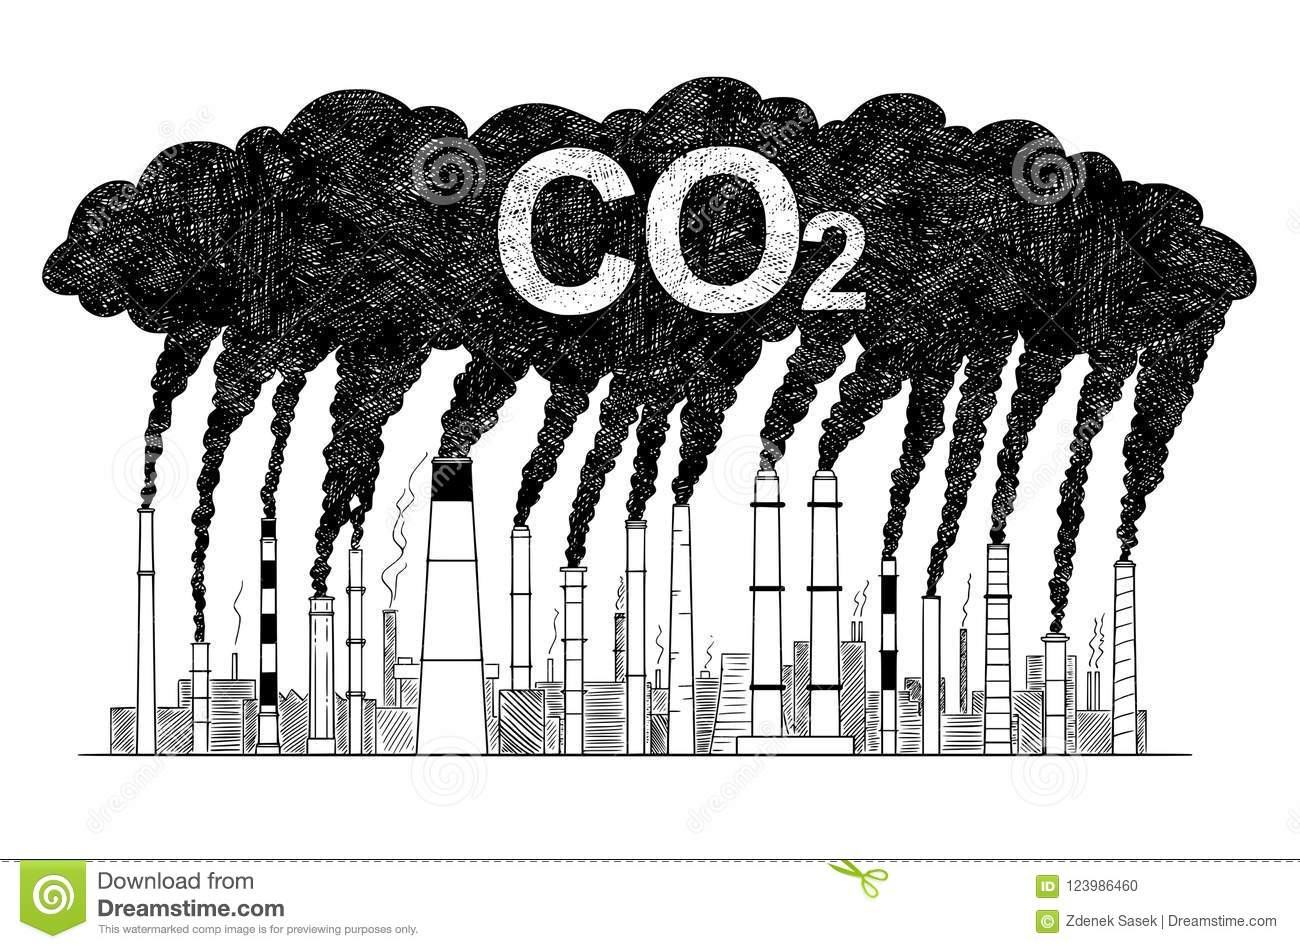 Vector artistic drawing illustration of smoking smokestacks concept of industry or factory co2 air pollution